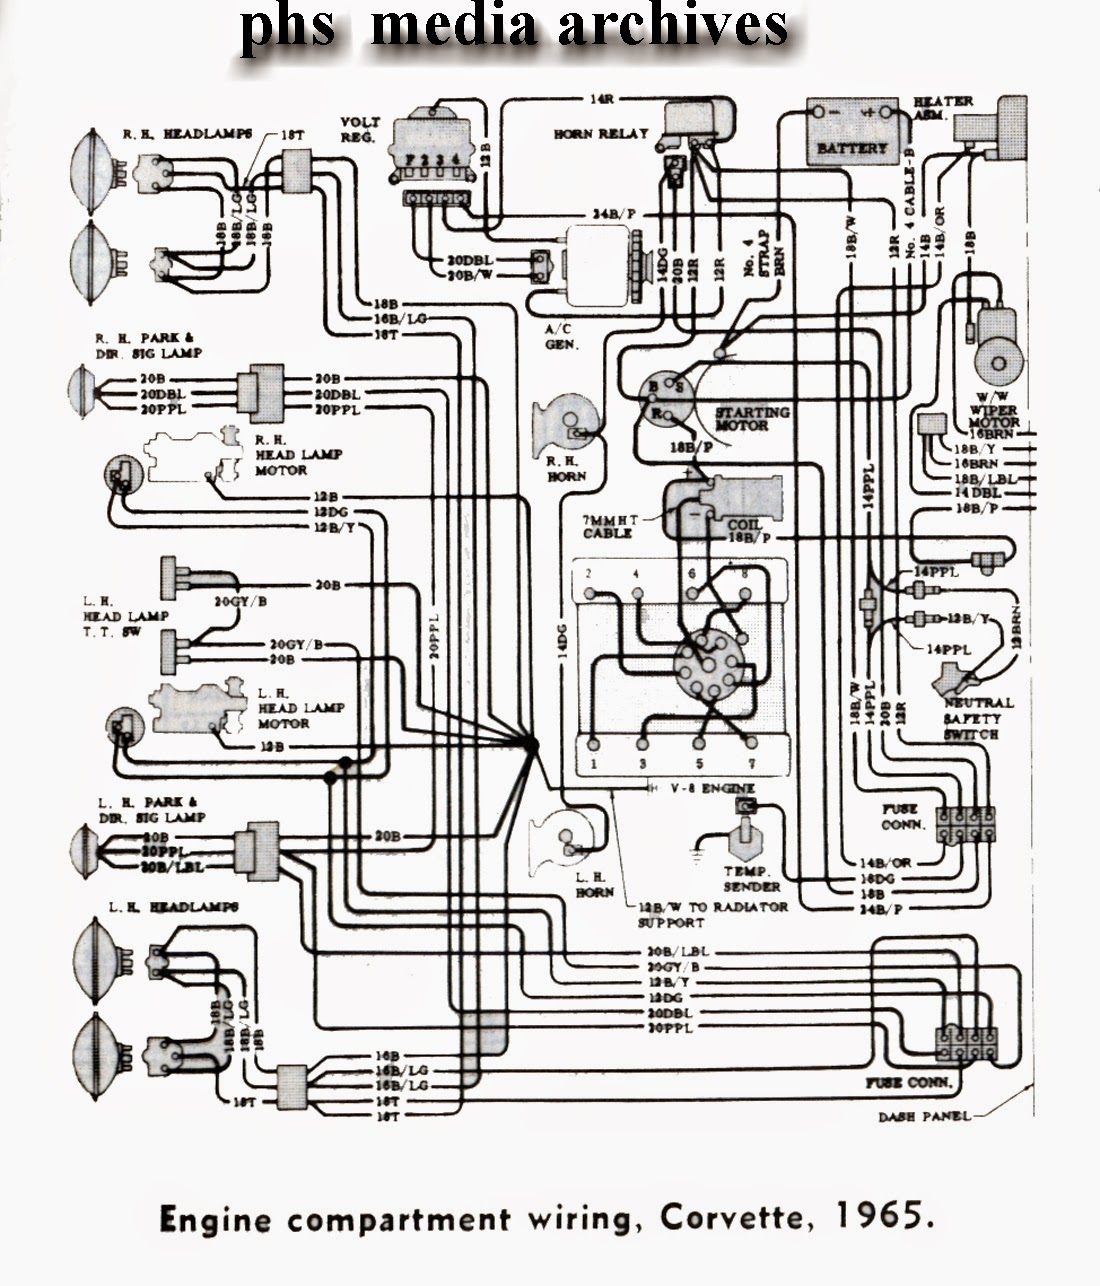 1980 corvette engine diagram | wiring library 76 corvette fuse box layout